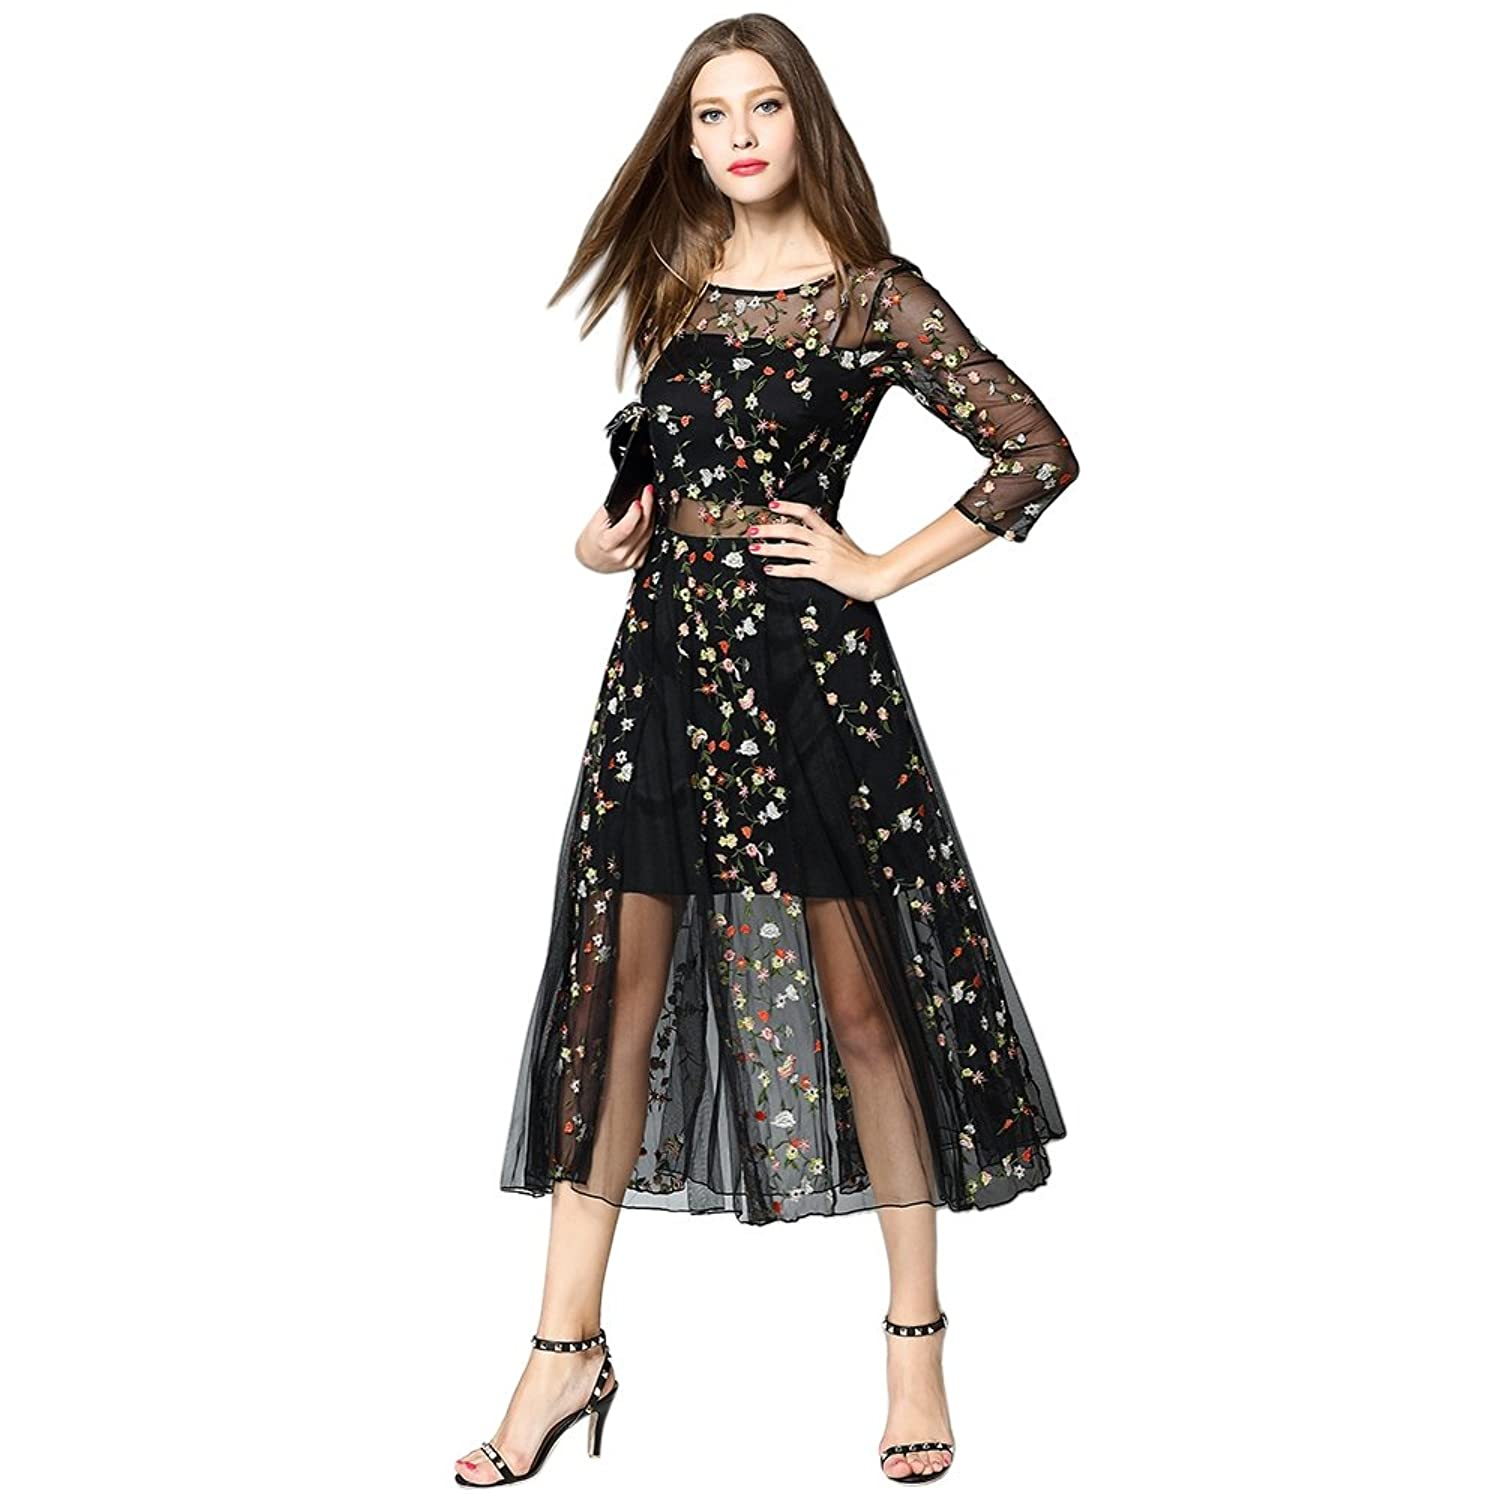 Cocktail dresses for women over 200